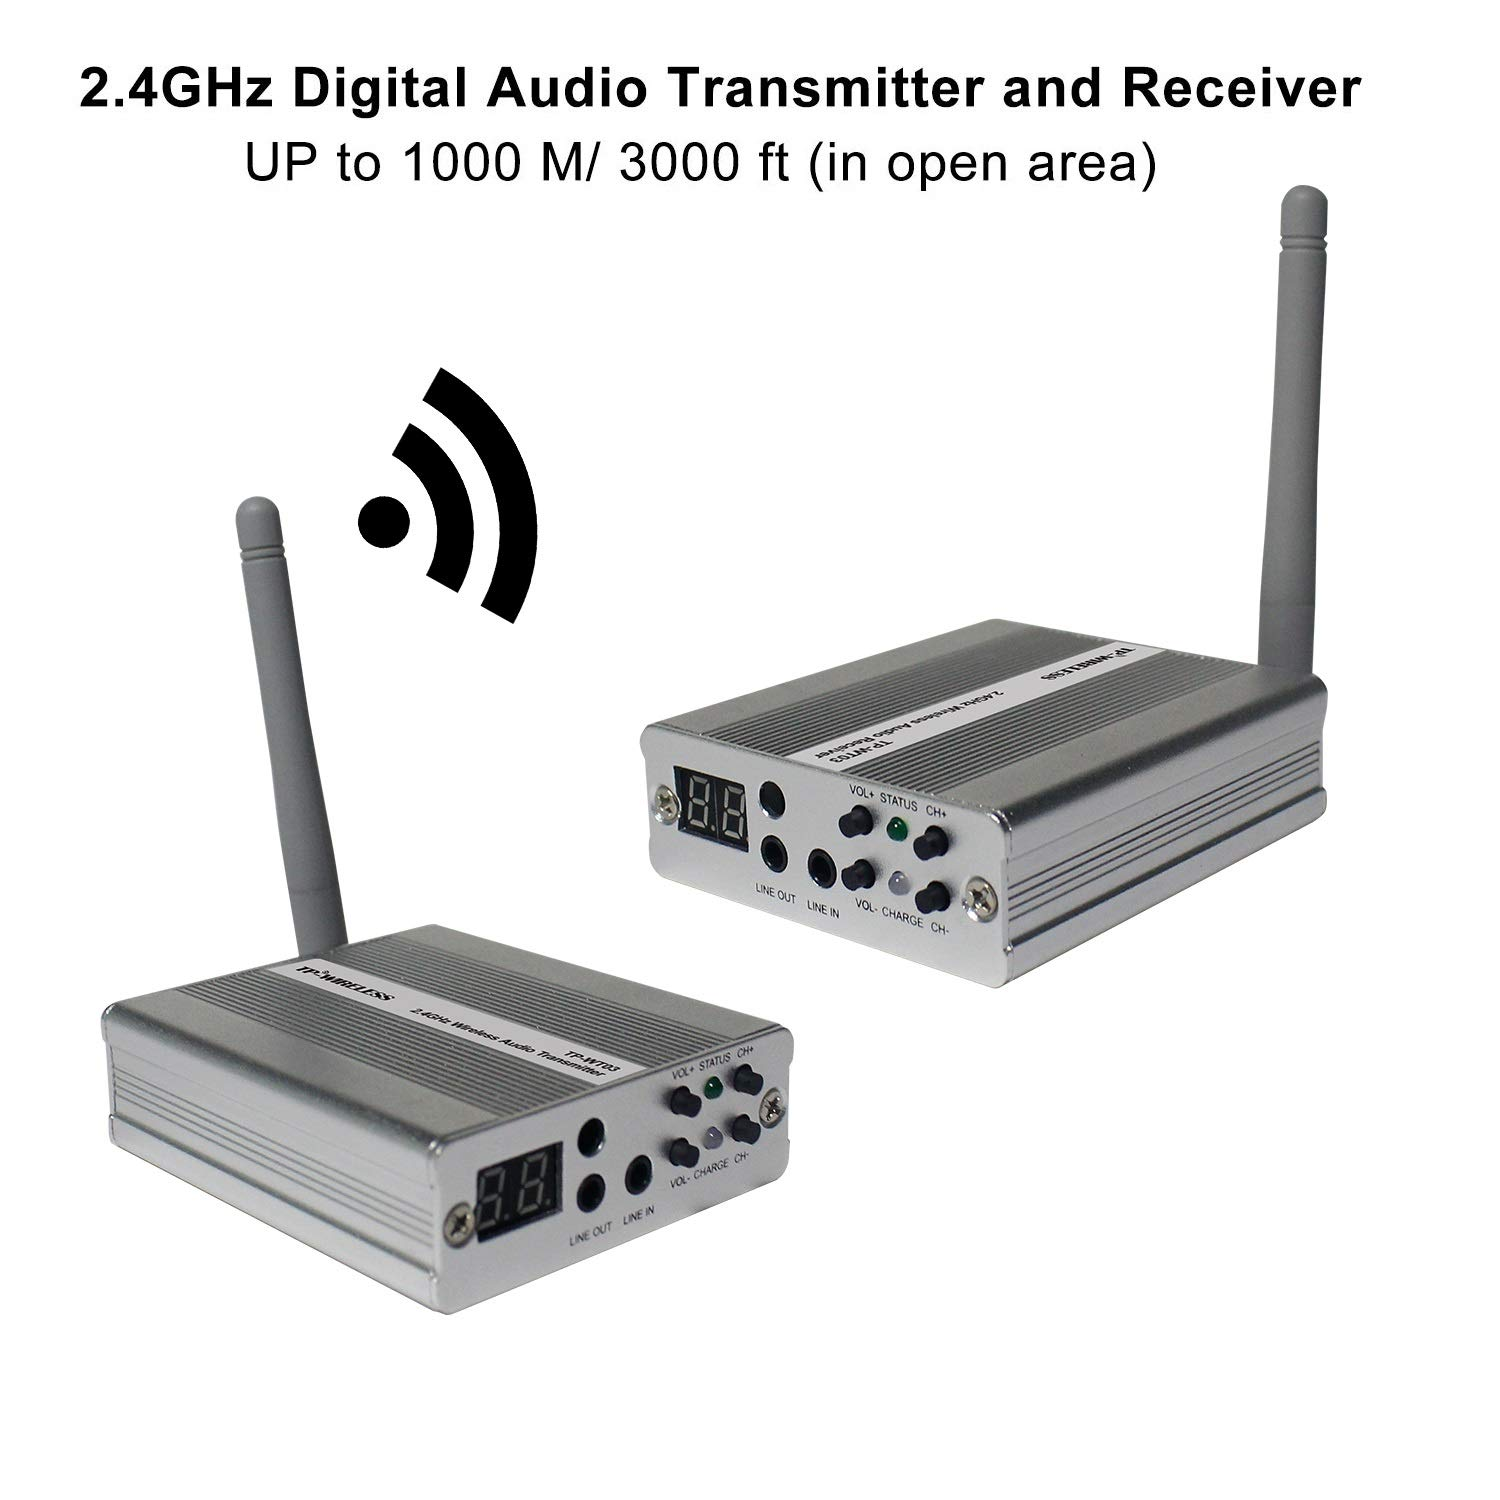 TP-WIRELESS 2.4GHz Long Range Digital Wireless HDCD Audio Adapter Music for Subwoofer and Active Speaker (3000ft 1 Transmitter and 1 Receiver)